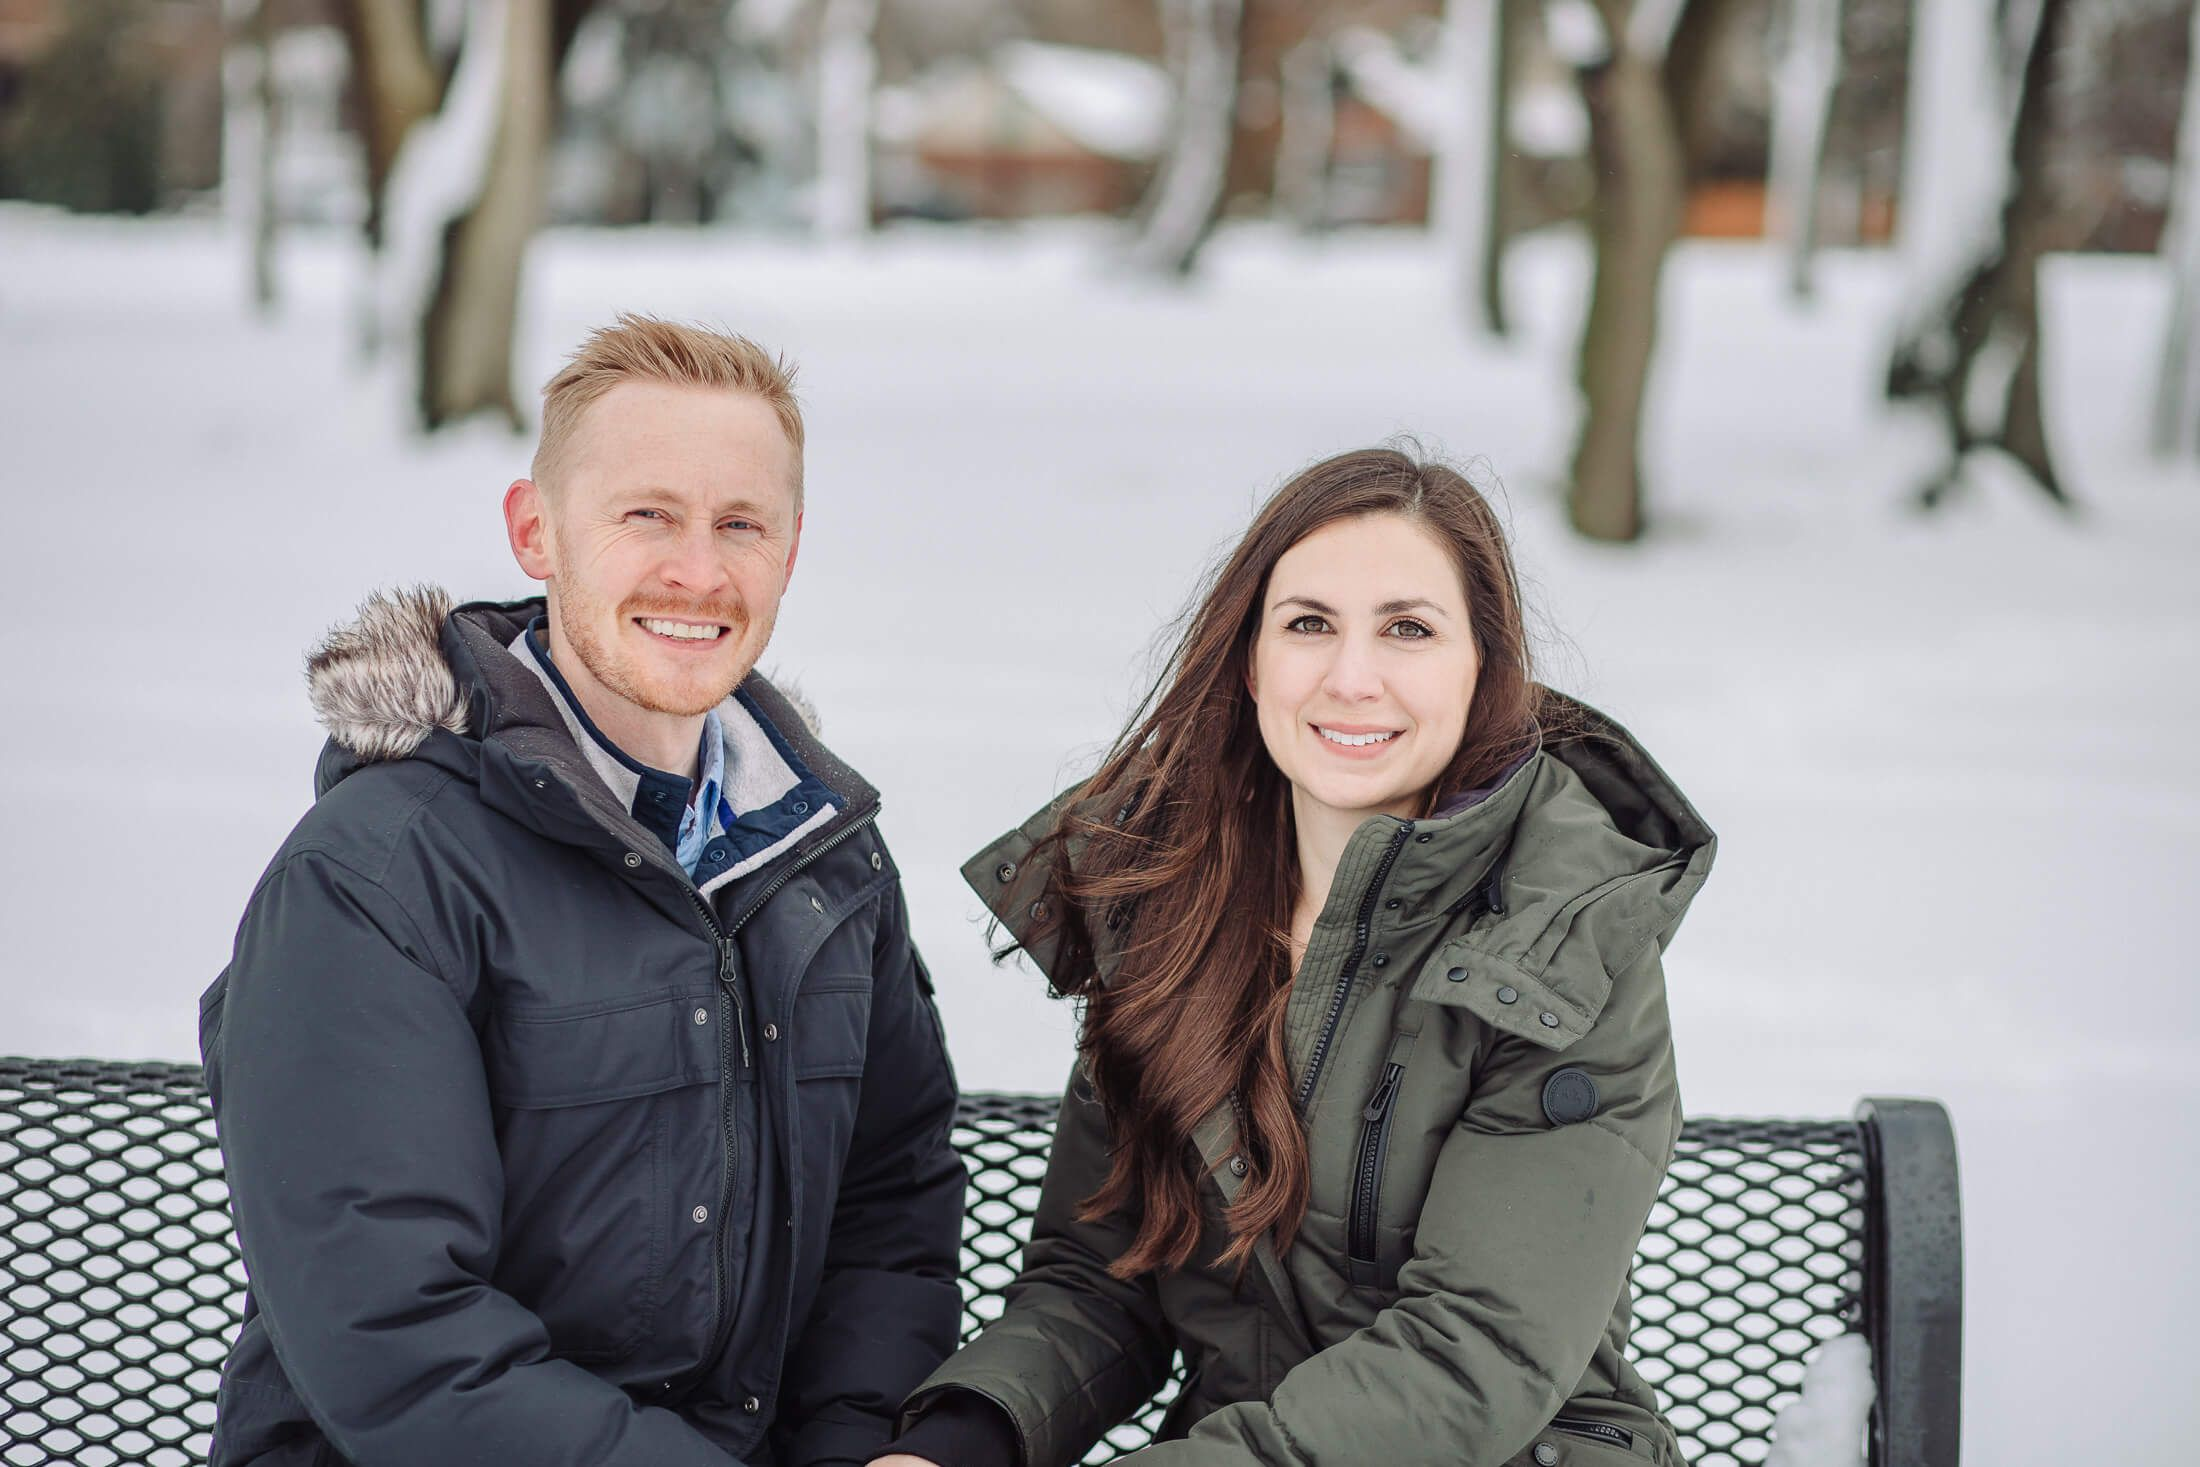 Winter engagement session at Cooper River Park in Cherry Hill, NJ.